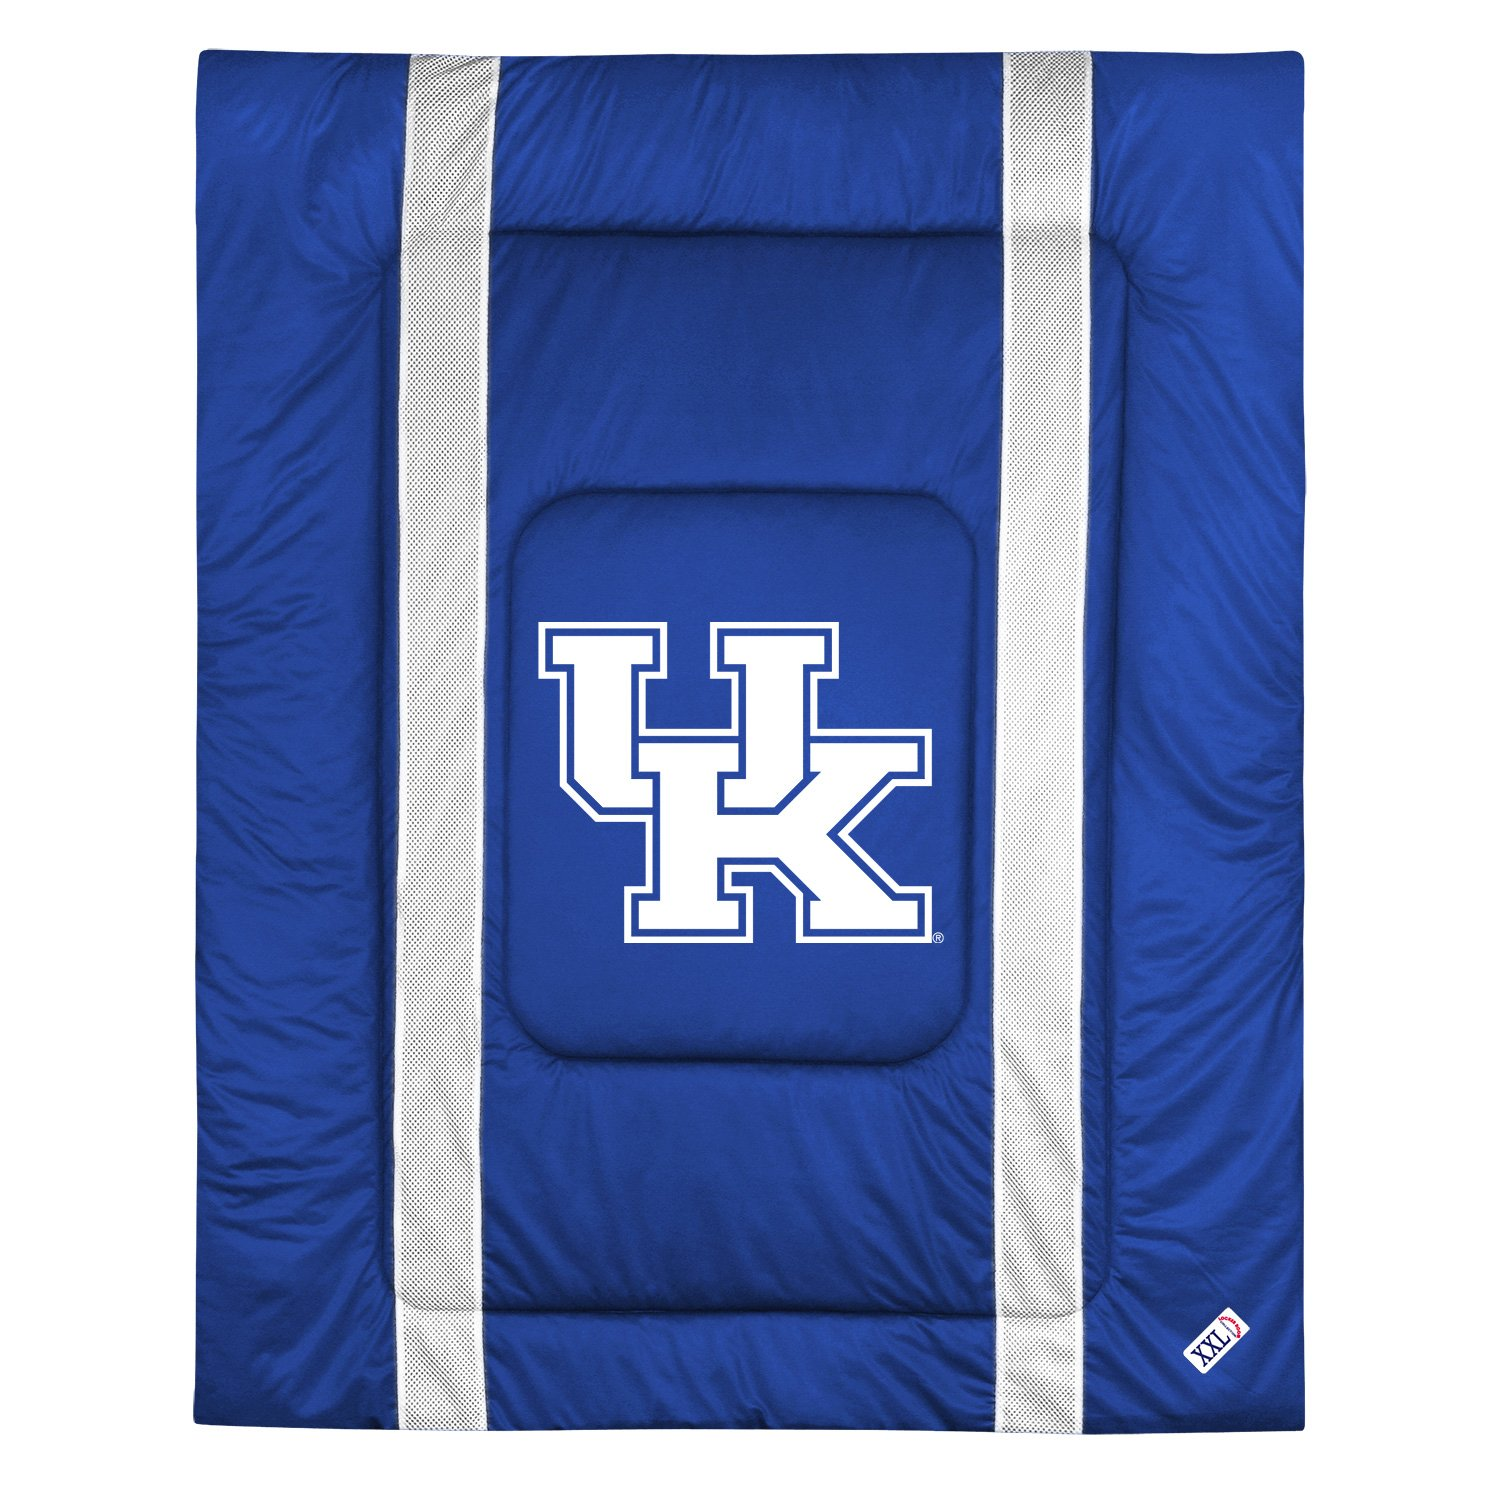 NCAA Kentucky Wildcats - 5pc BED IN A BAG - Queen Bedding Set by Store51 (Image #3)